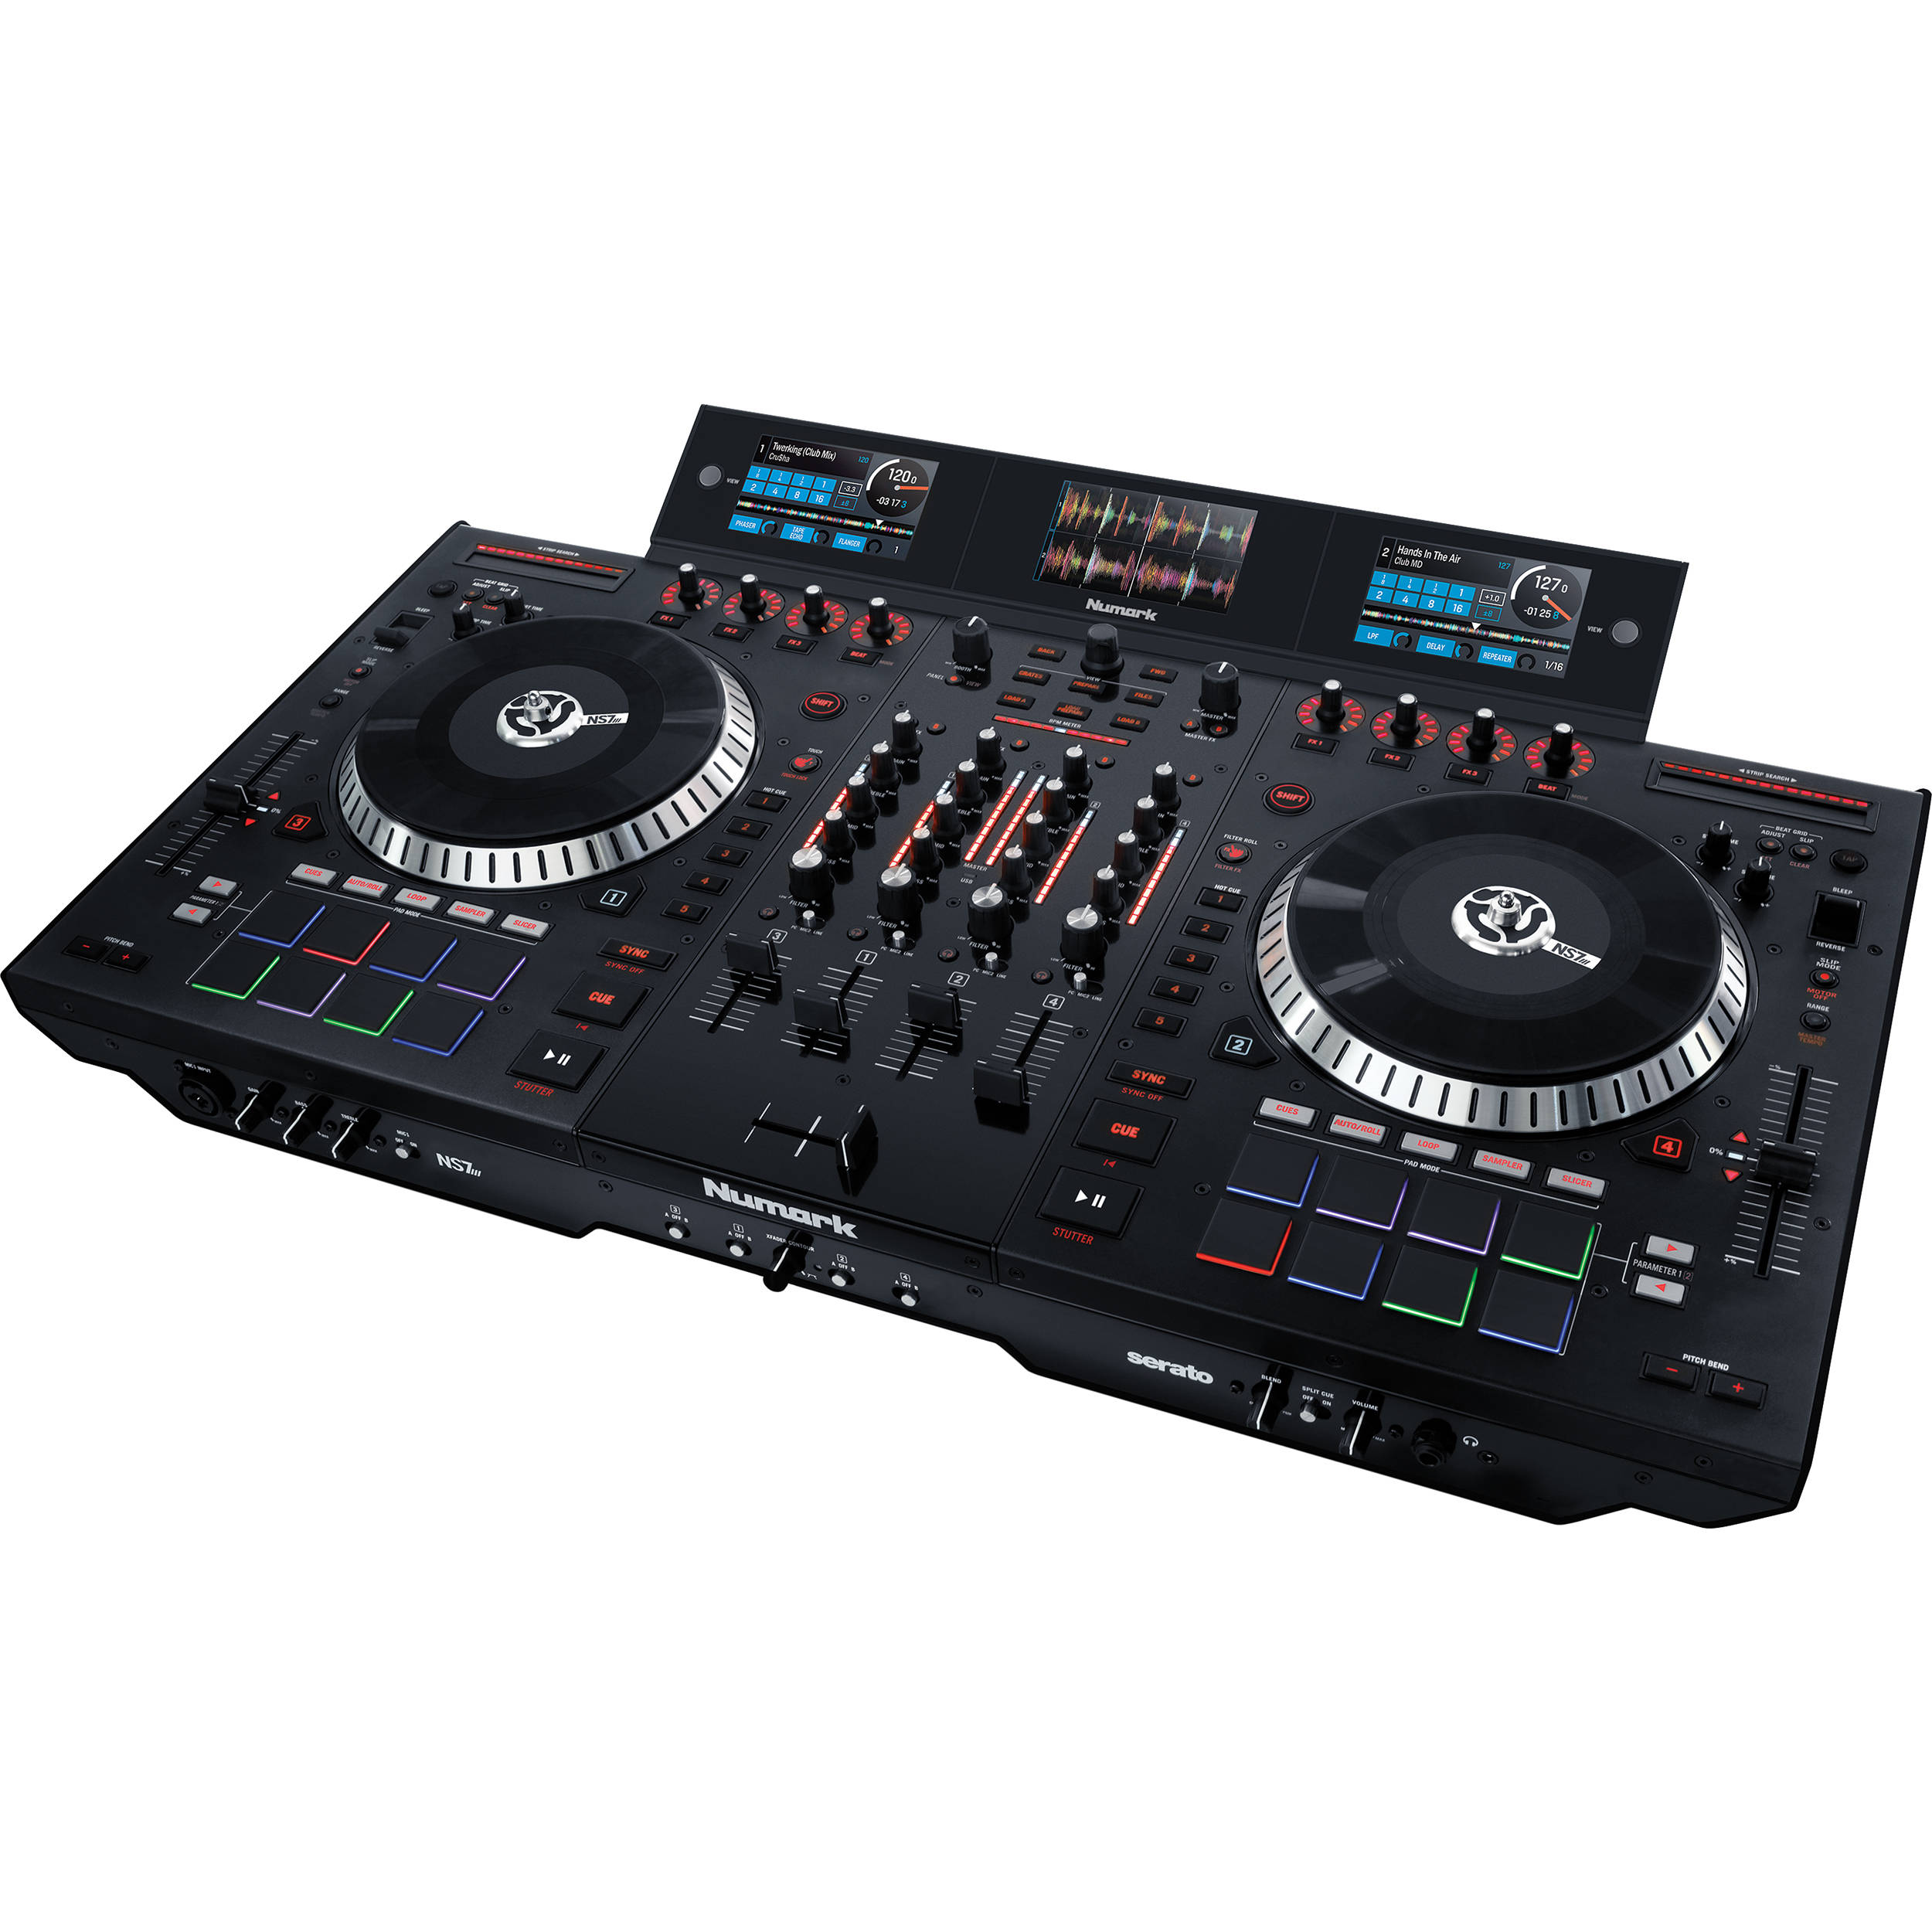 Numark NS7III 4-Deck Serato DJ Controller/Mixer with Multiscreen Display